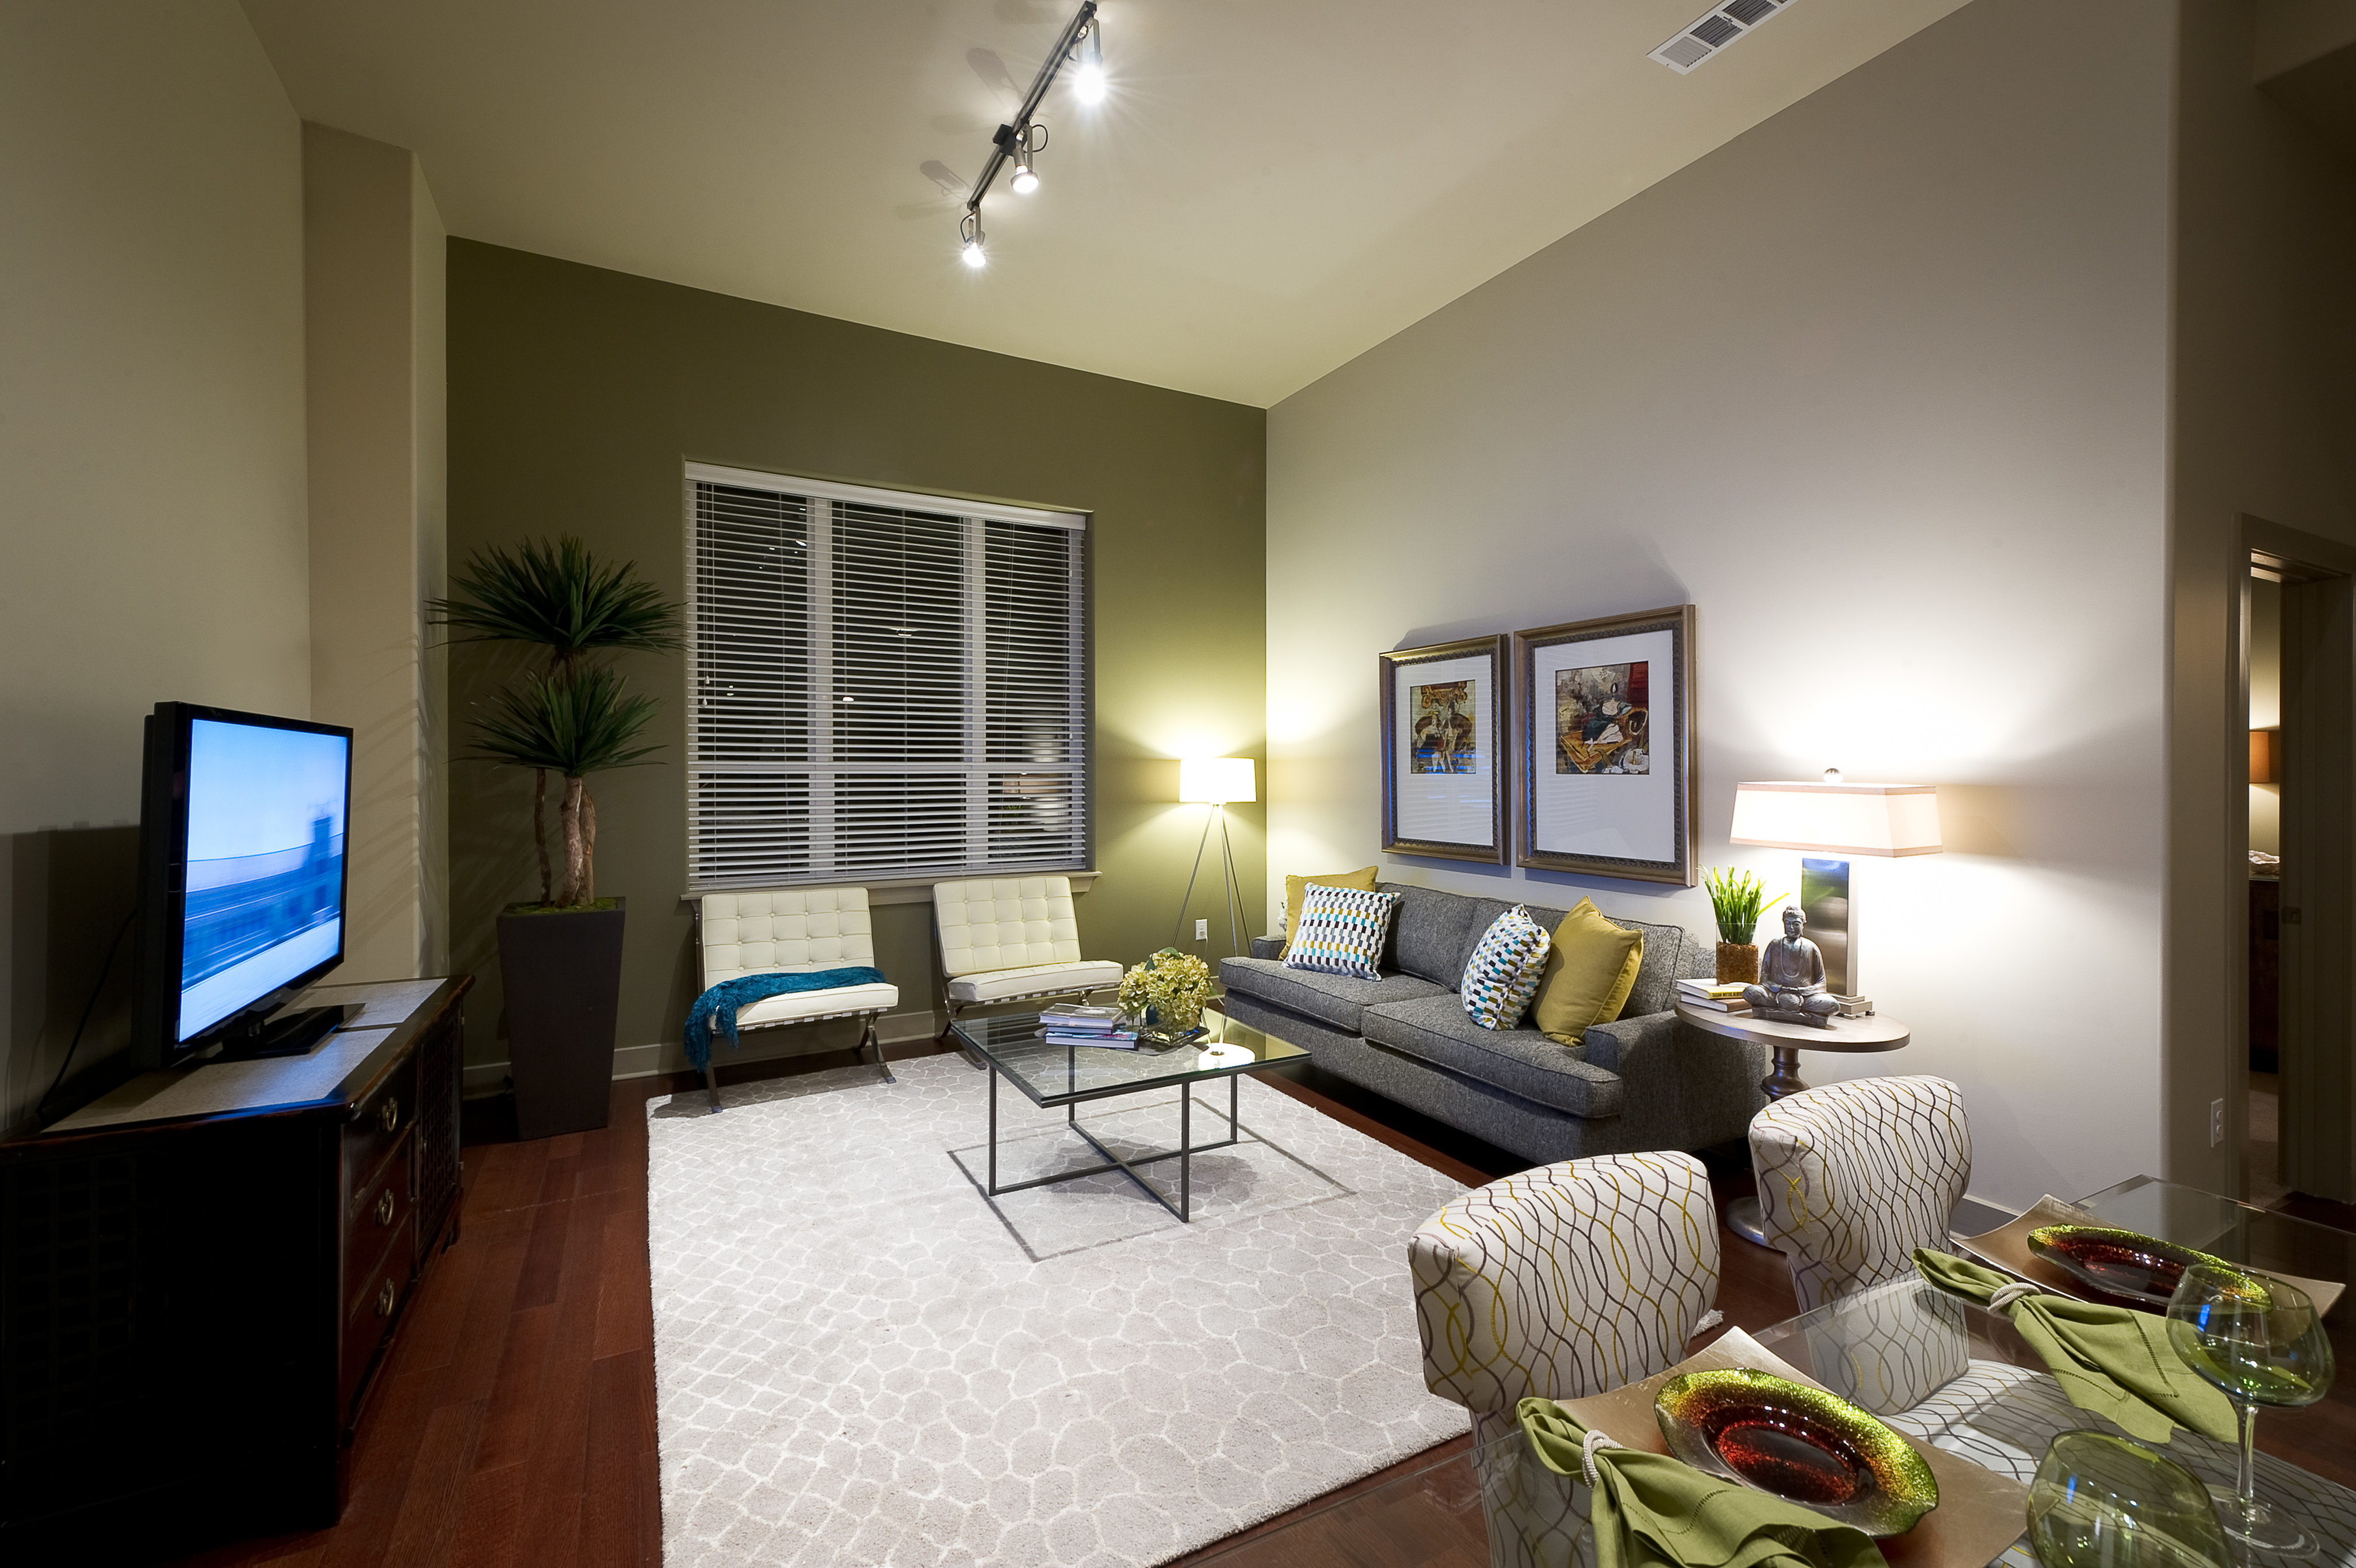 Open living spaces with high ceilings